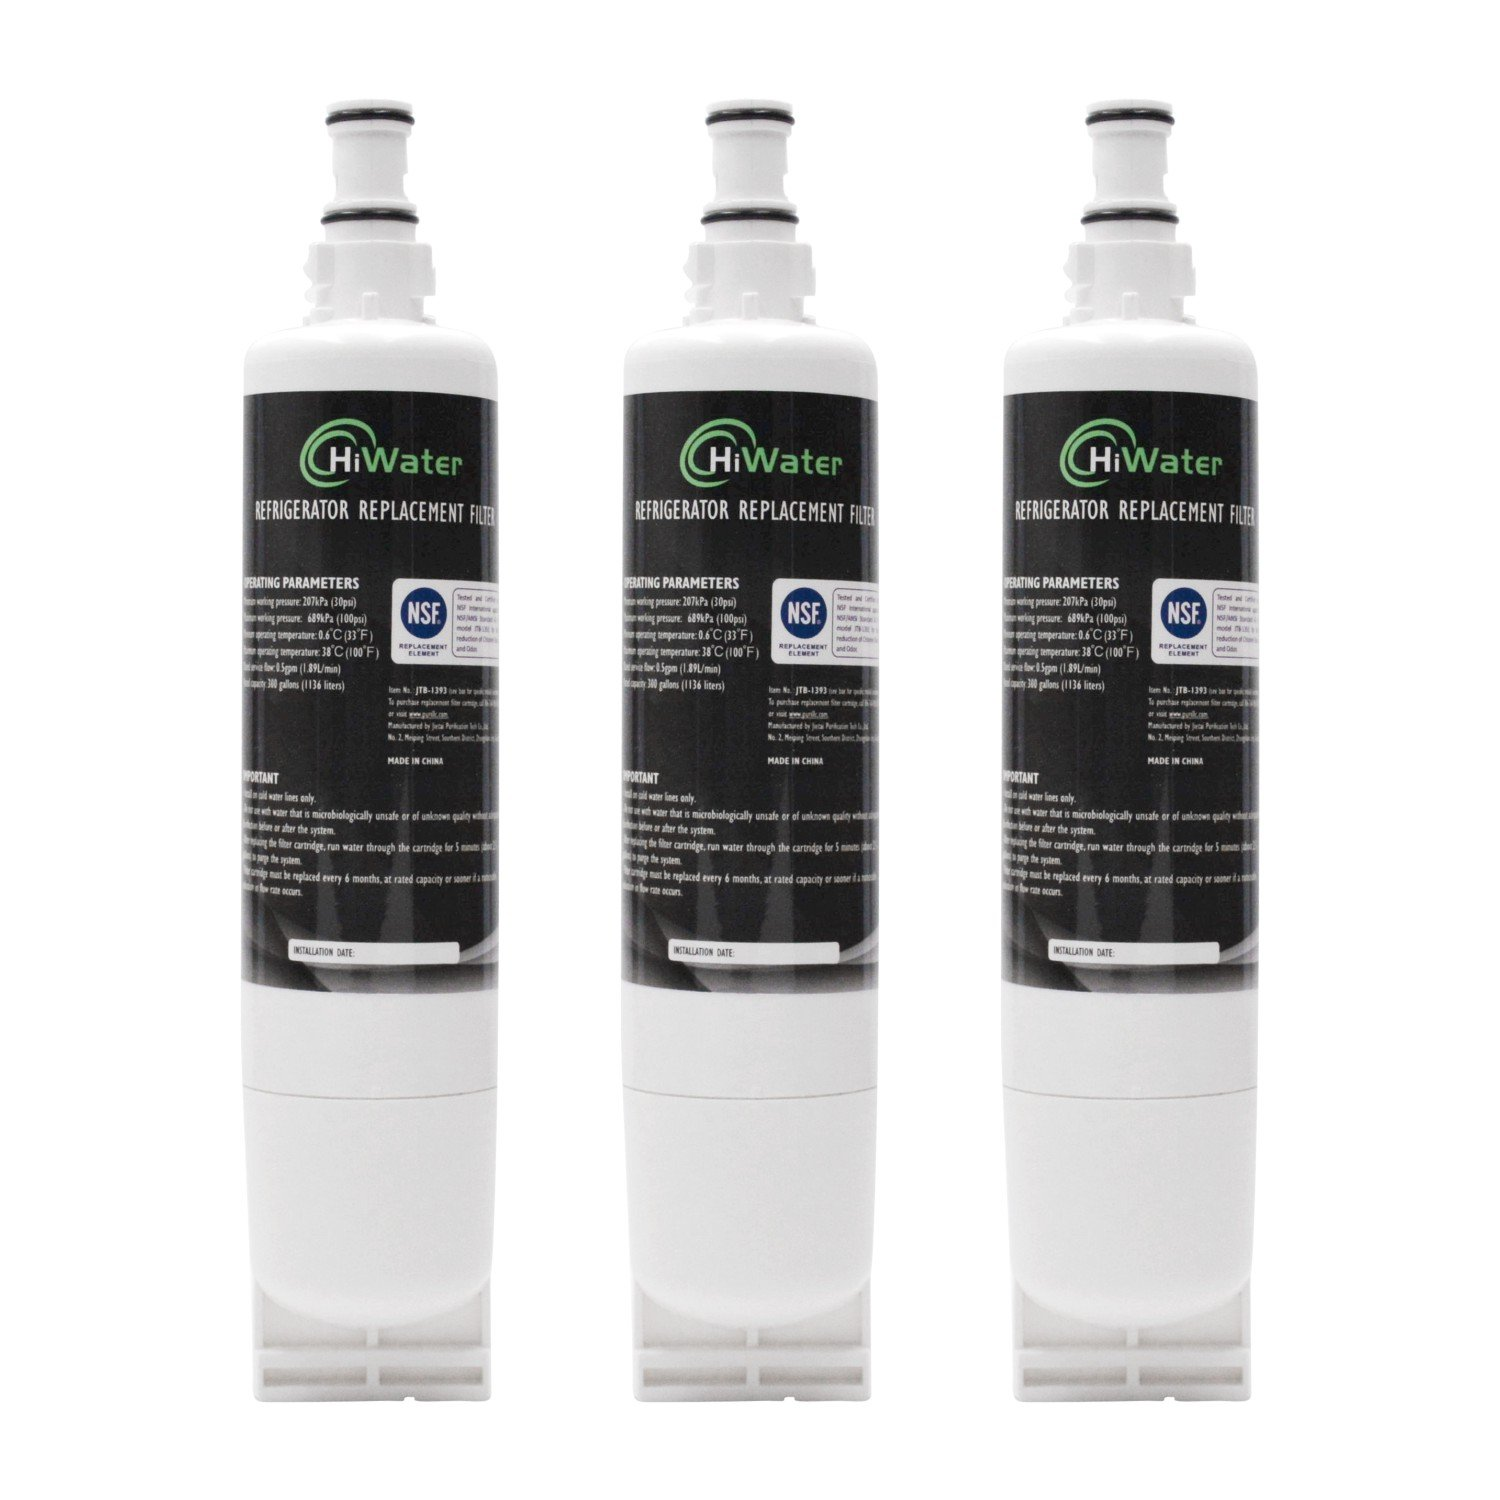 4396508 Refrigerator Water Filter for Whirlpool 4396508, 4396510, NLC240V, W10186668, Kenmore 46-9010 EveryDrop Filter 5, EDR5RXD1 (3Pack)